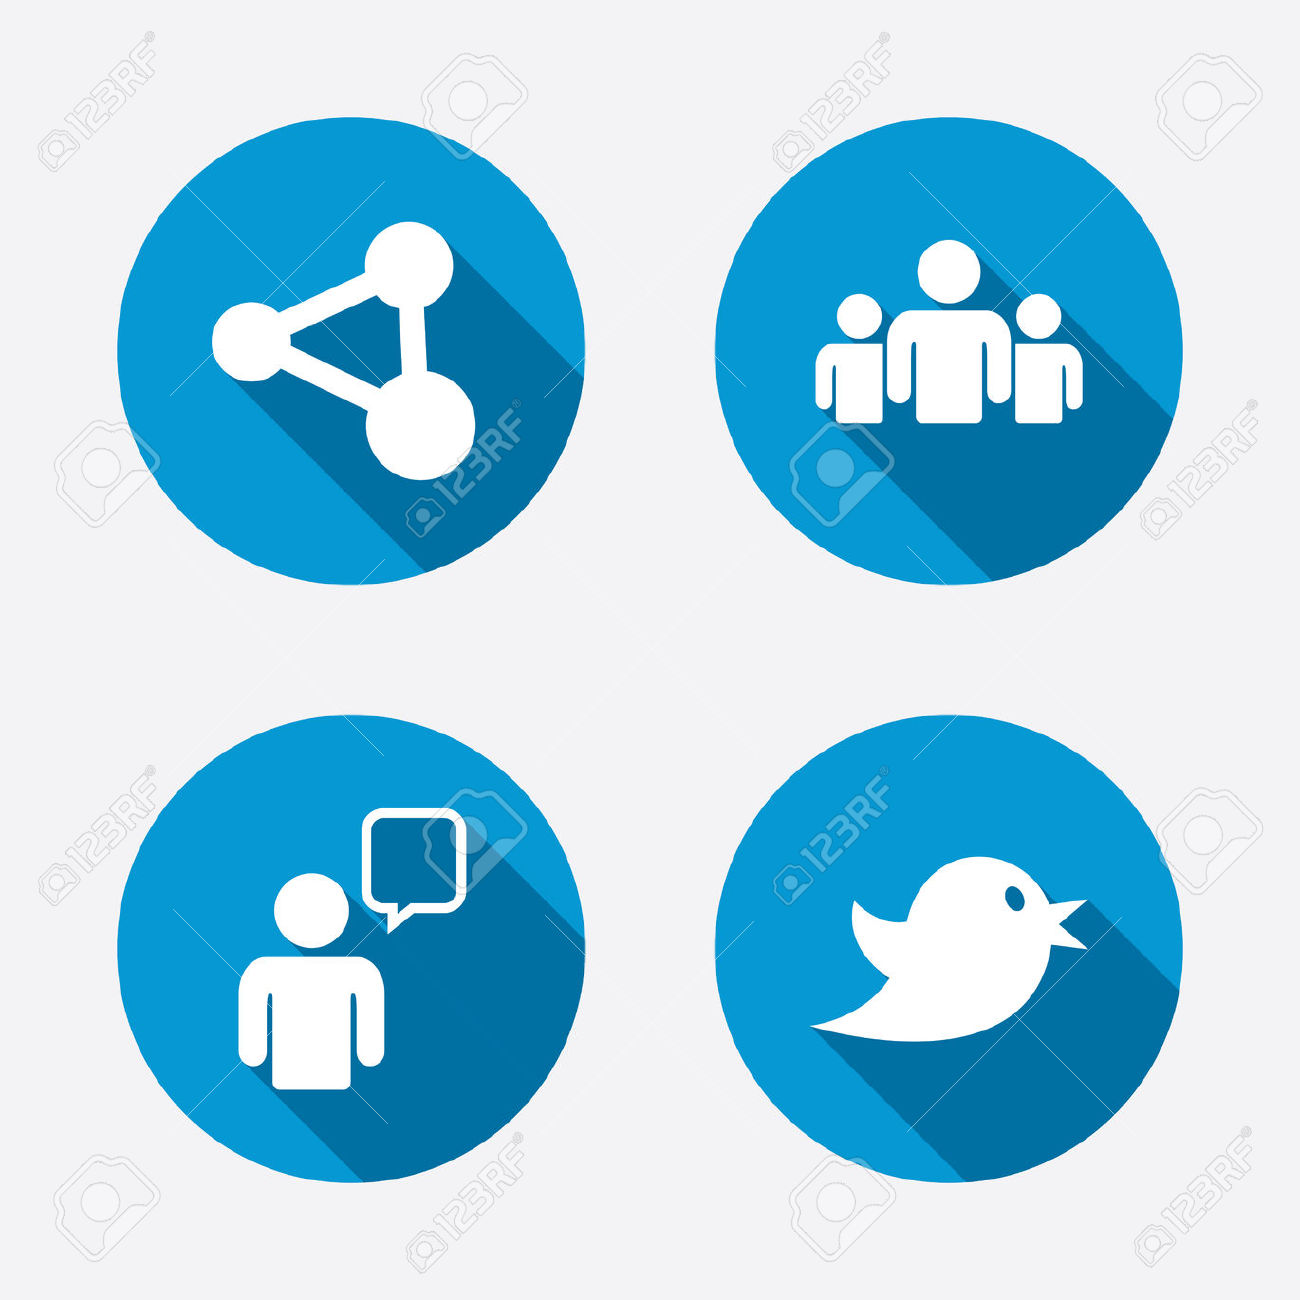 Group Of People And Share Icons. Speech Bubble And Twitter Retweet.